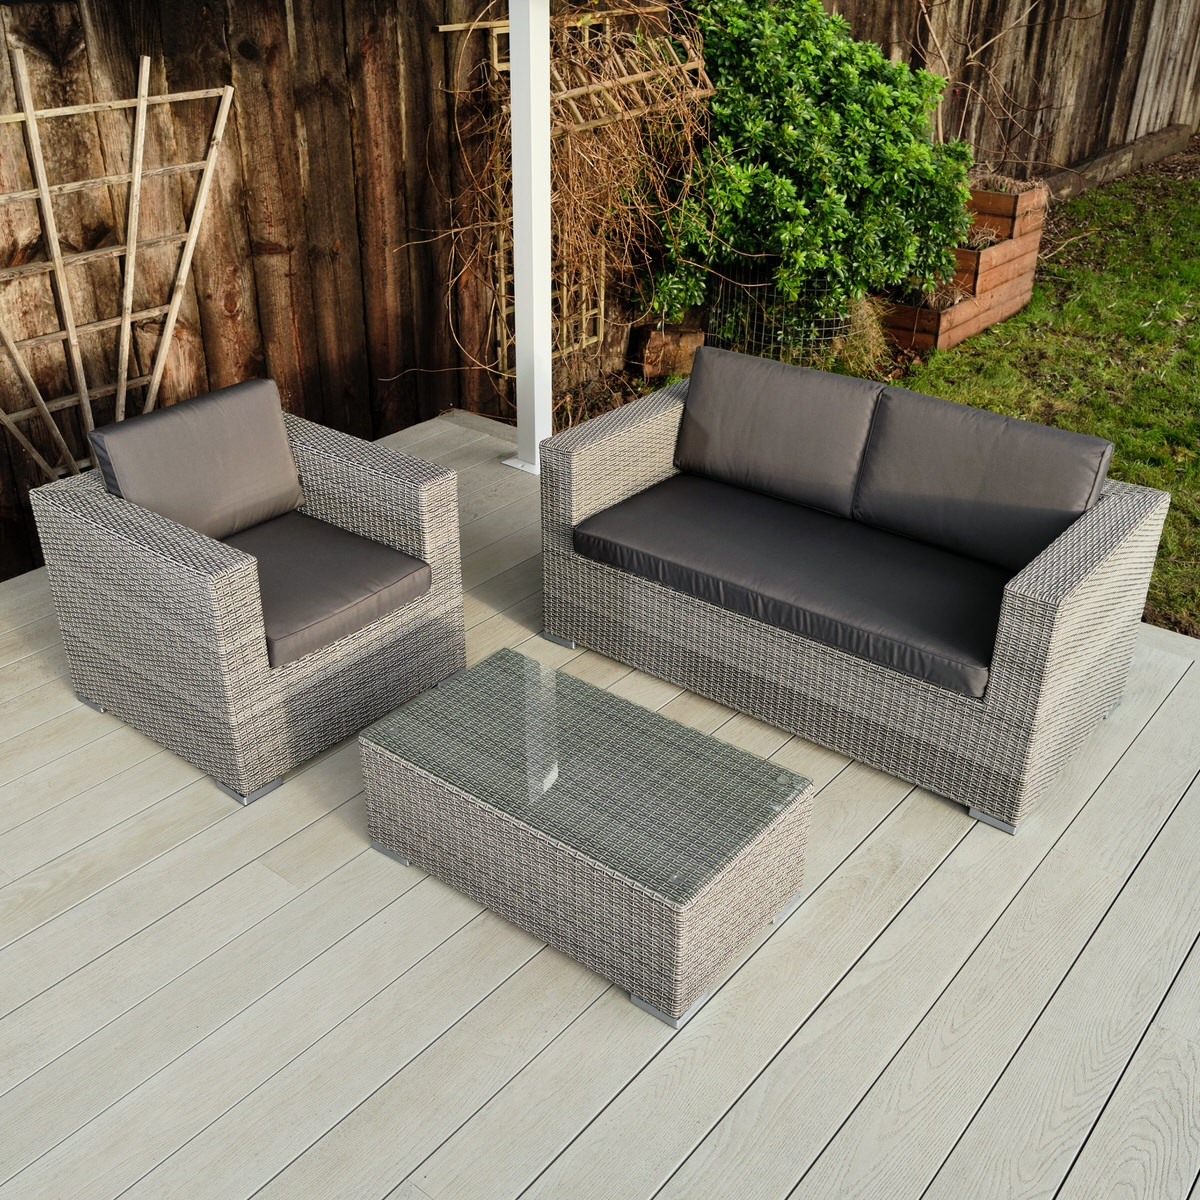 A grey rattan outdoor sofa set with 2 seater sofa, armchair and coffee table on a light grey garden deck